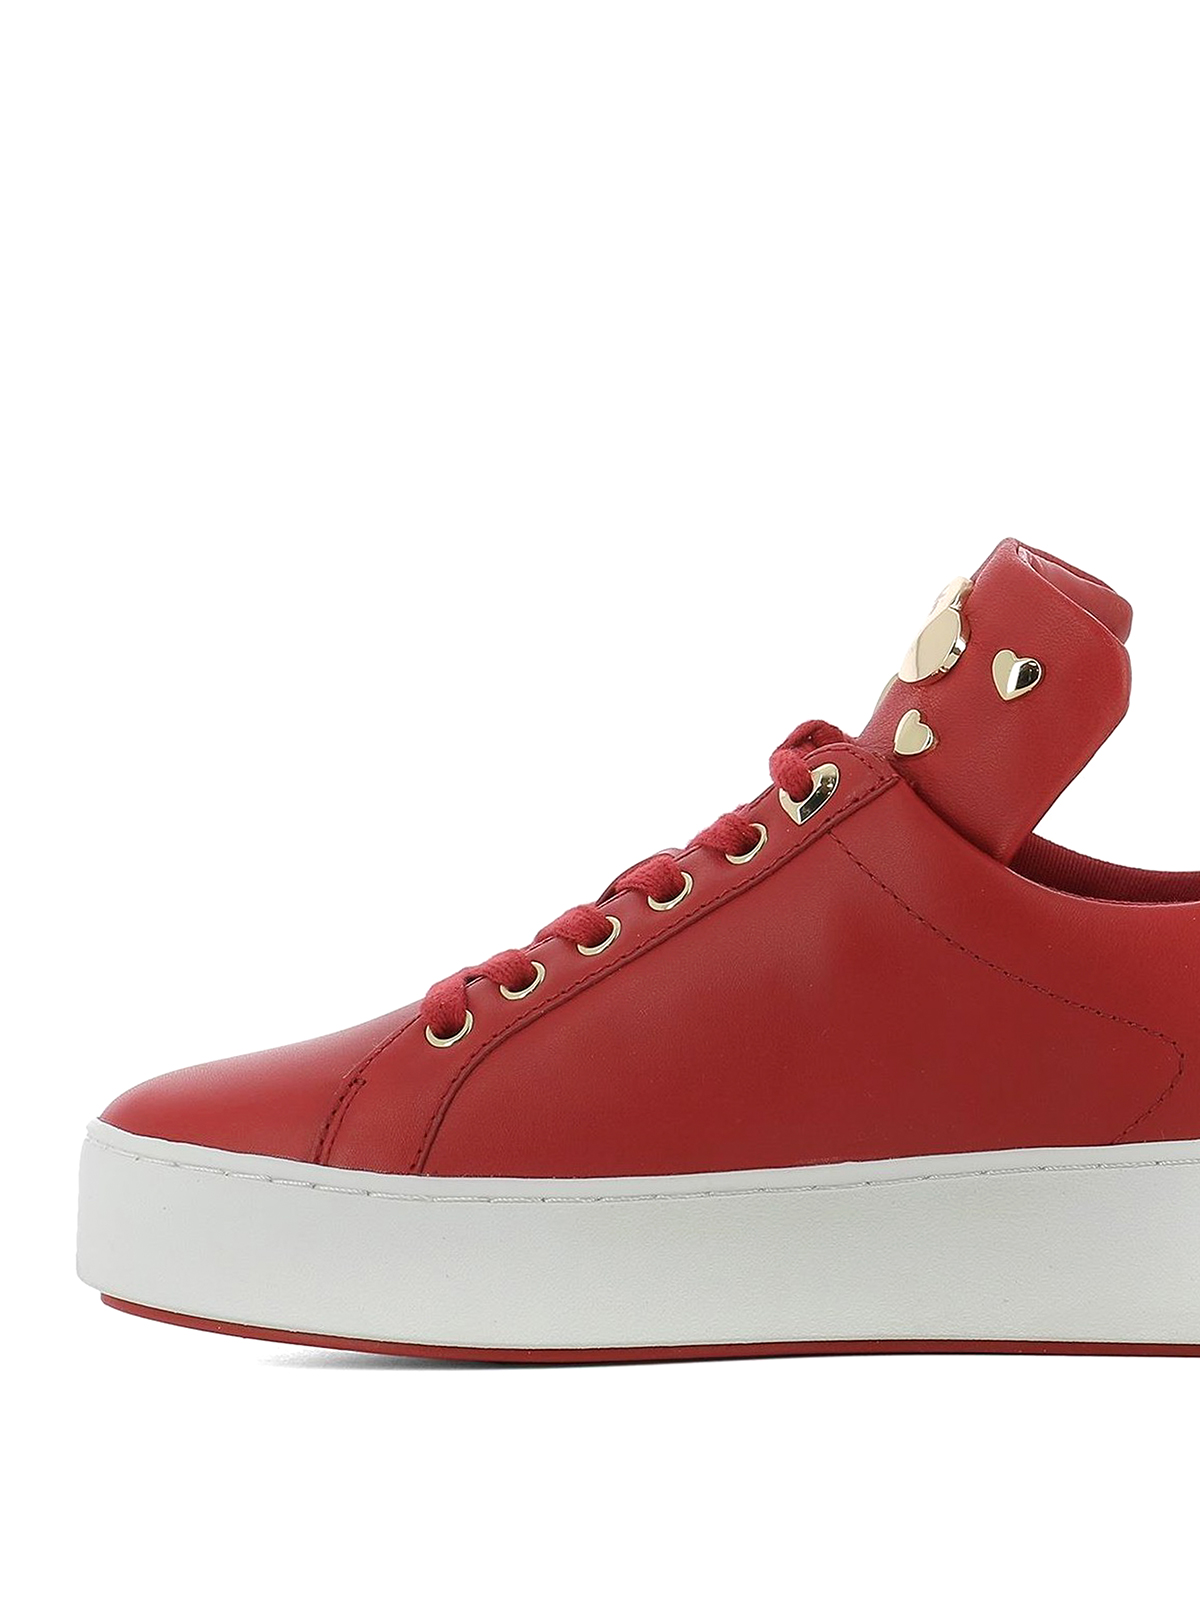 Michael Kors Baskets Rouge Chaussures de sport